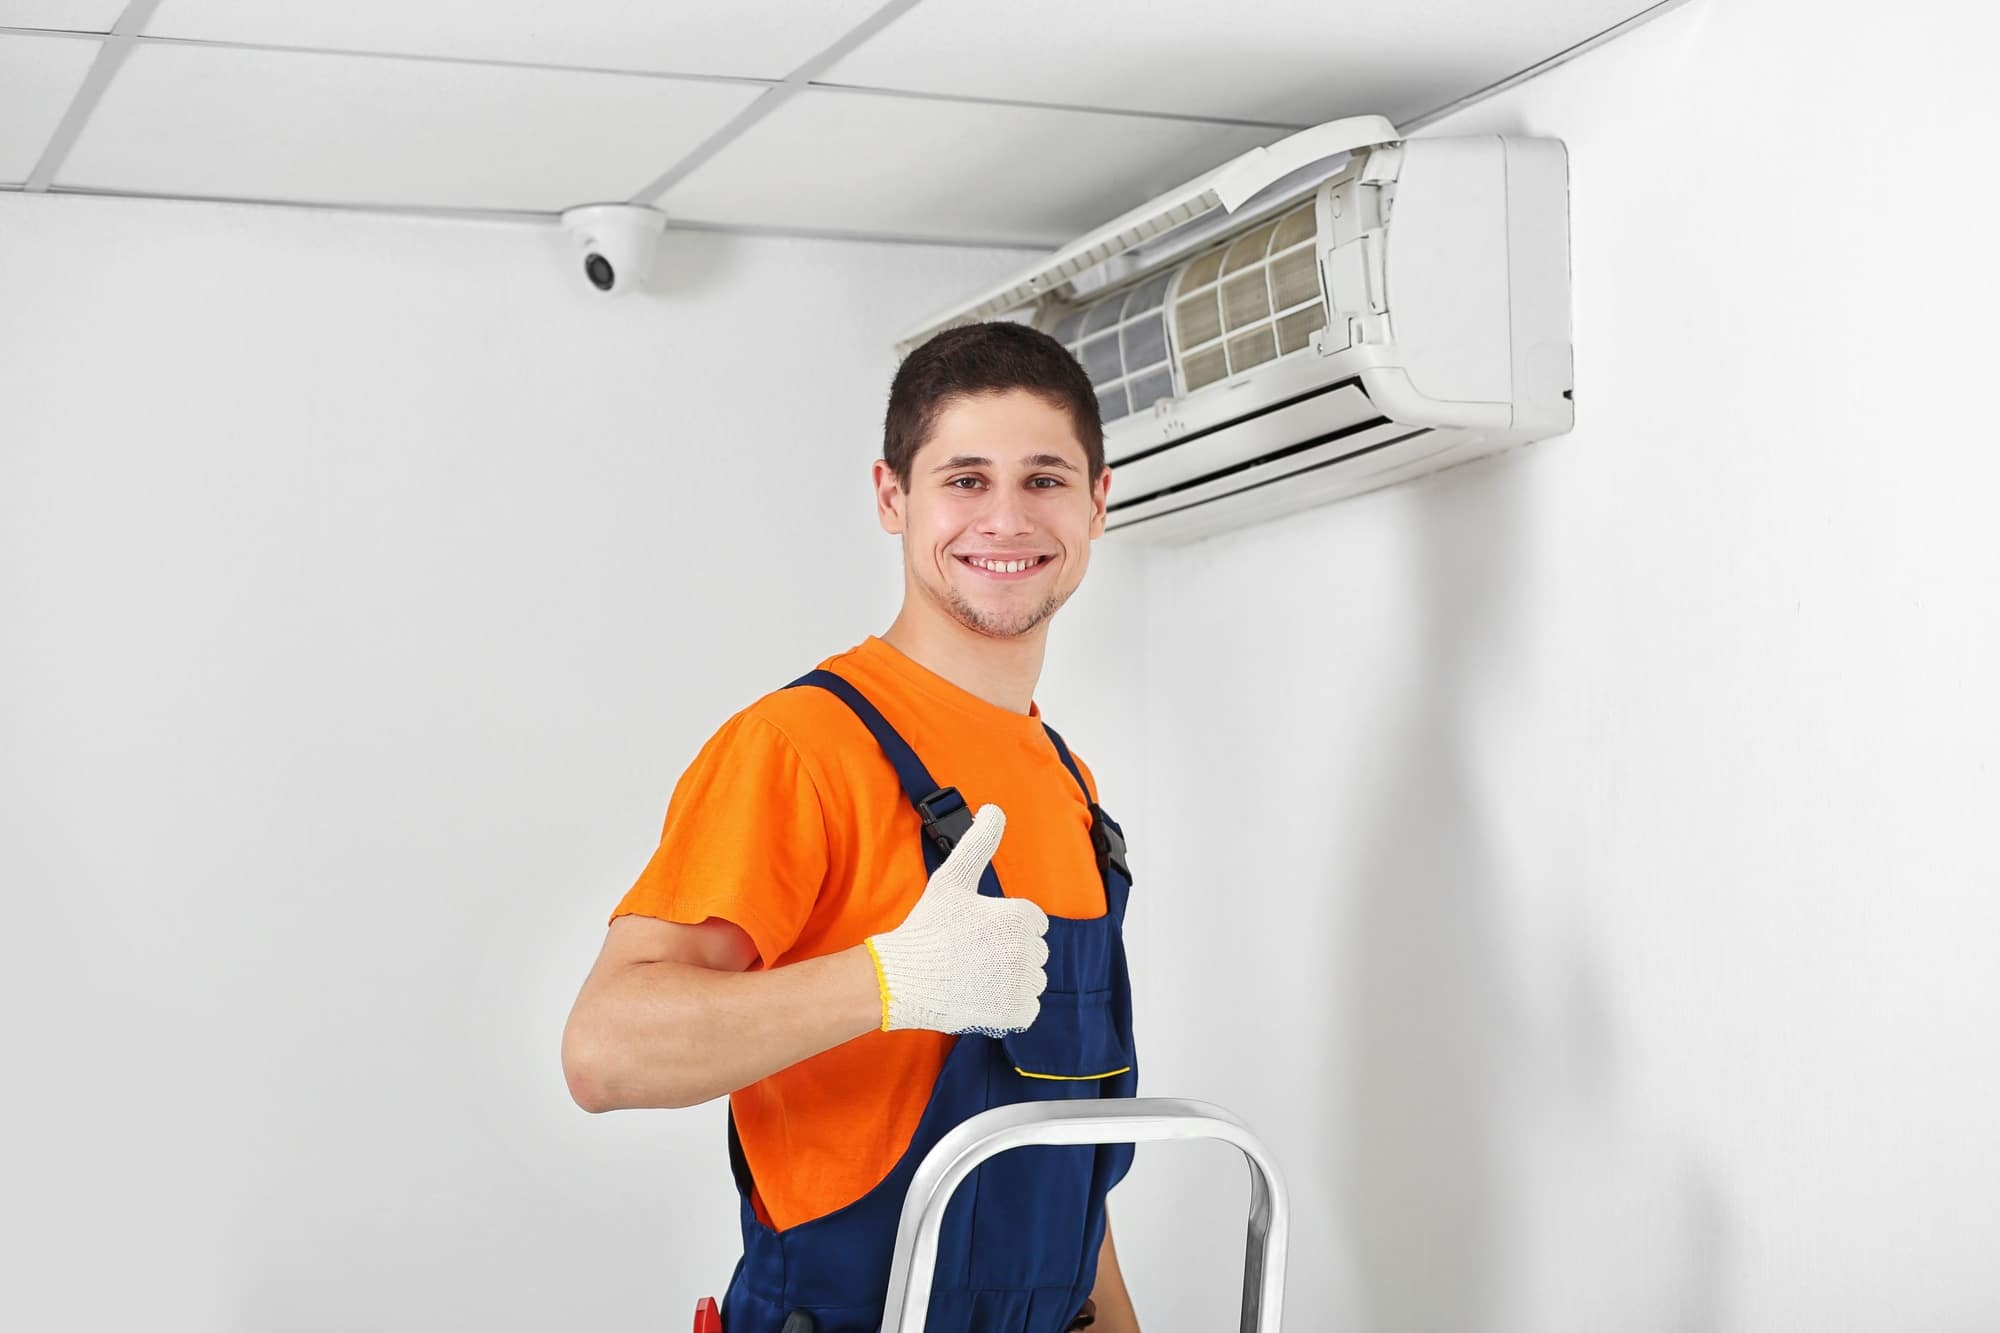 24 hour air conditioning repair edmonton alberta